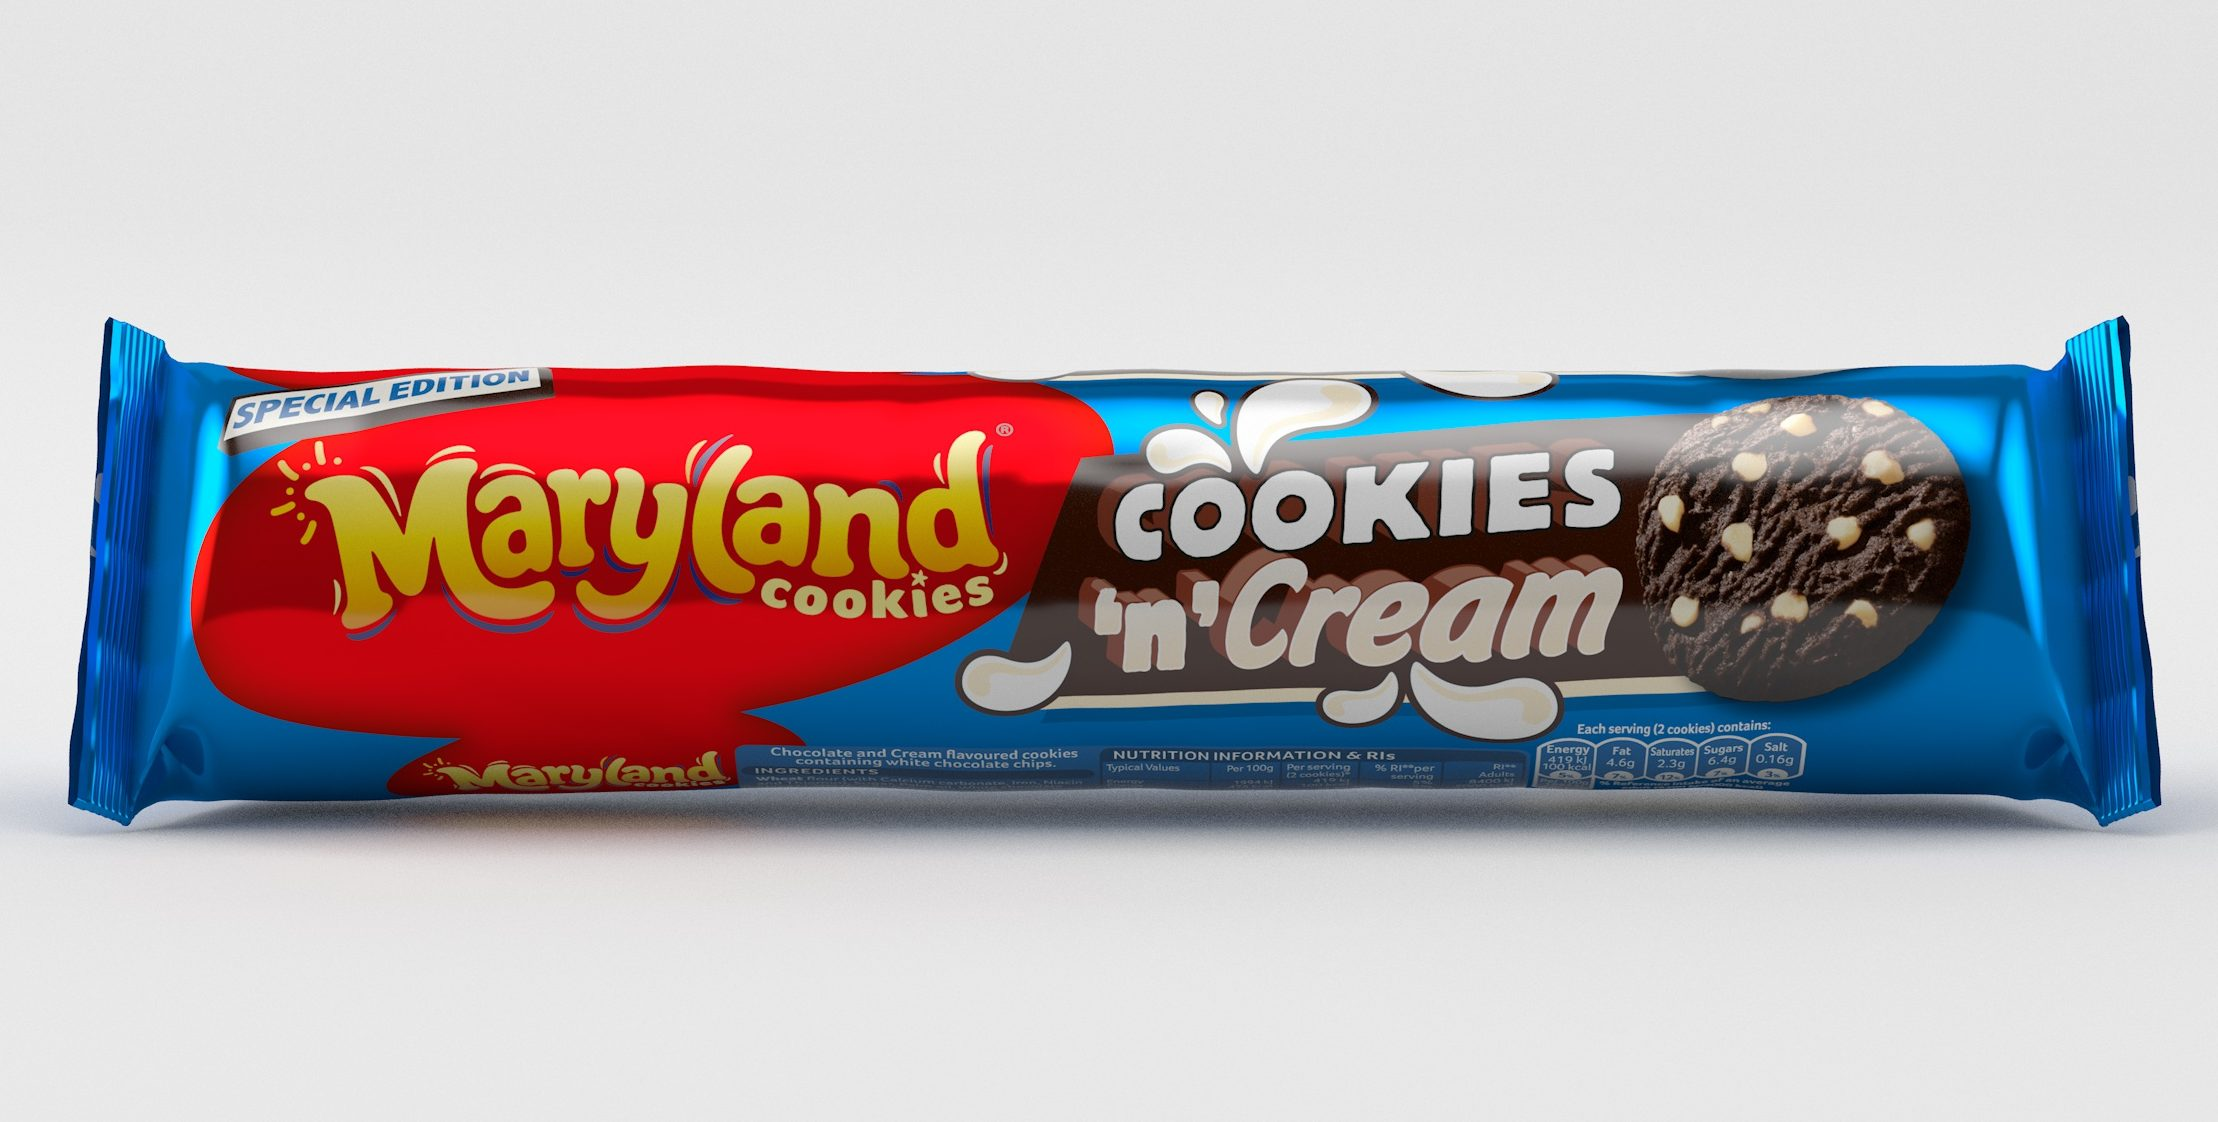 Maryland launches 'incredible' new Cookies 'n' Cream biscuits – and they're on offer for 75p!